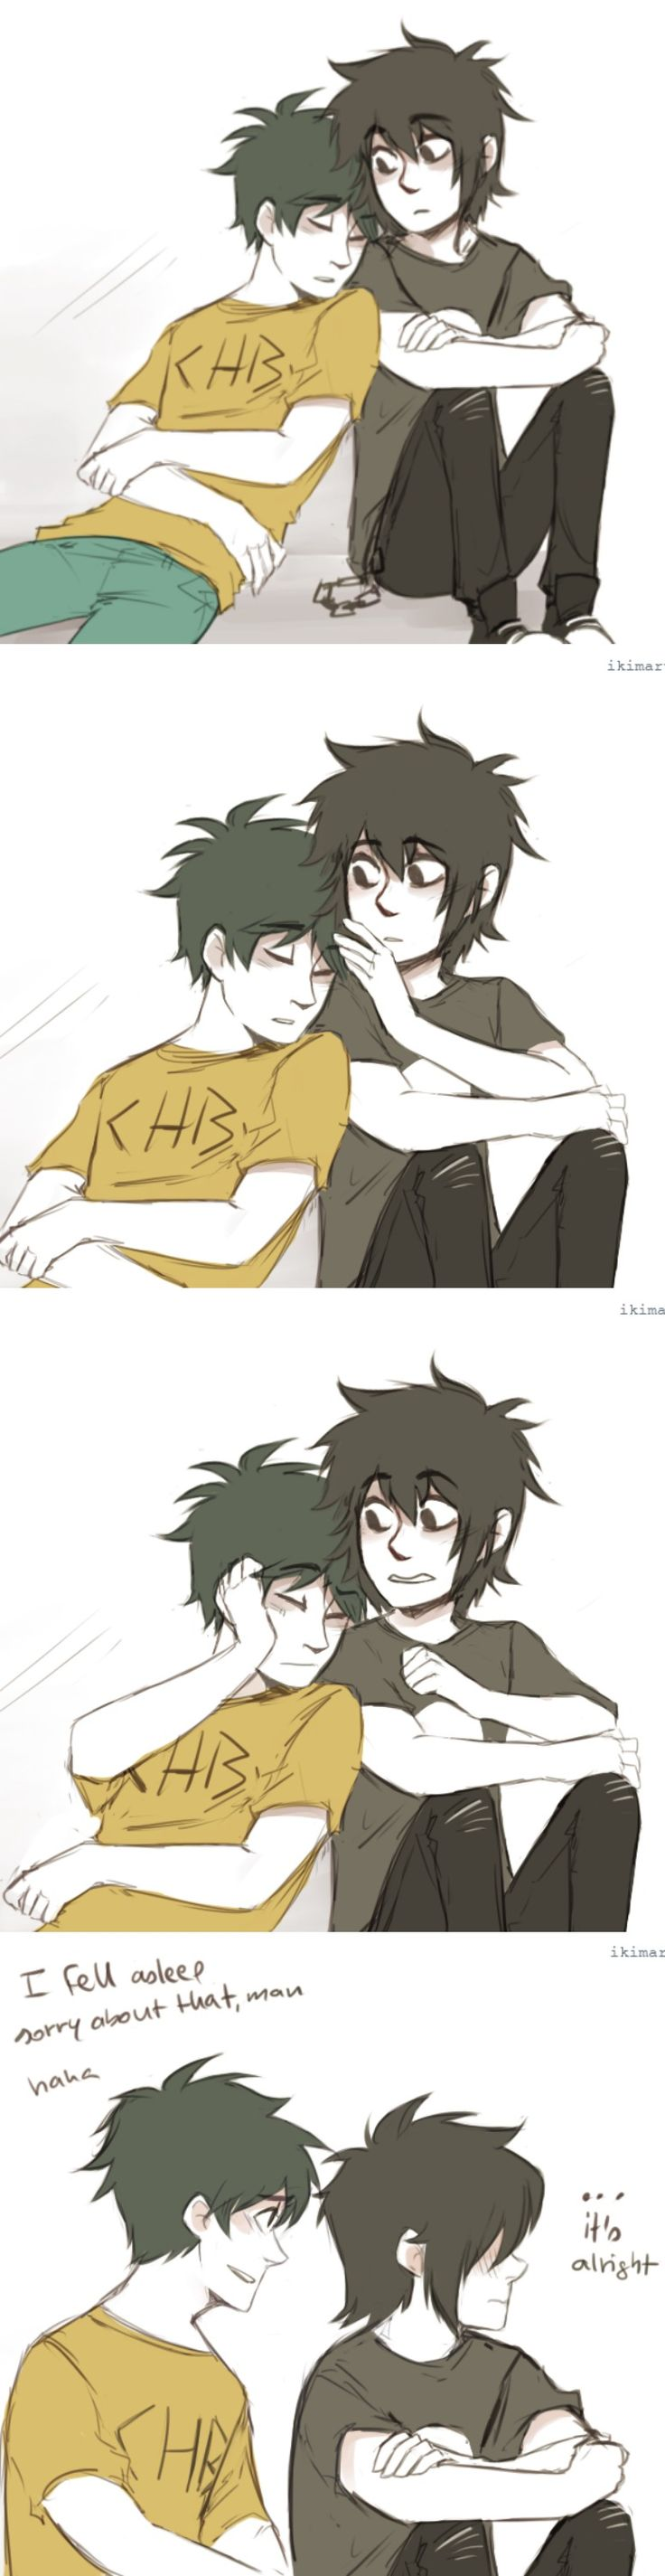 Percy Jackson and Nico di Angelo Fan Art | Peter Johnson ...